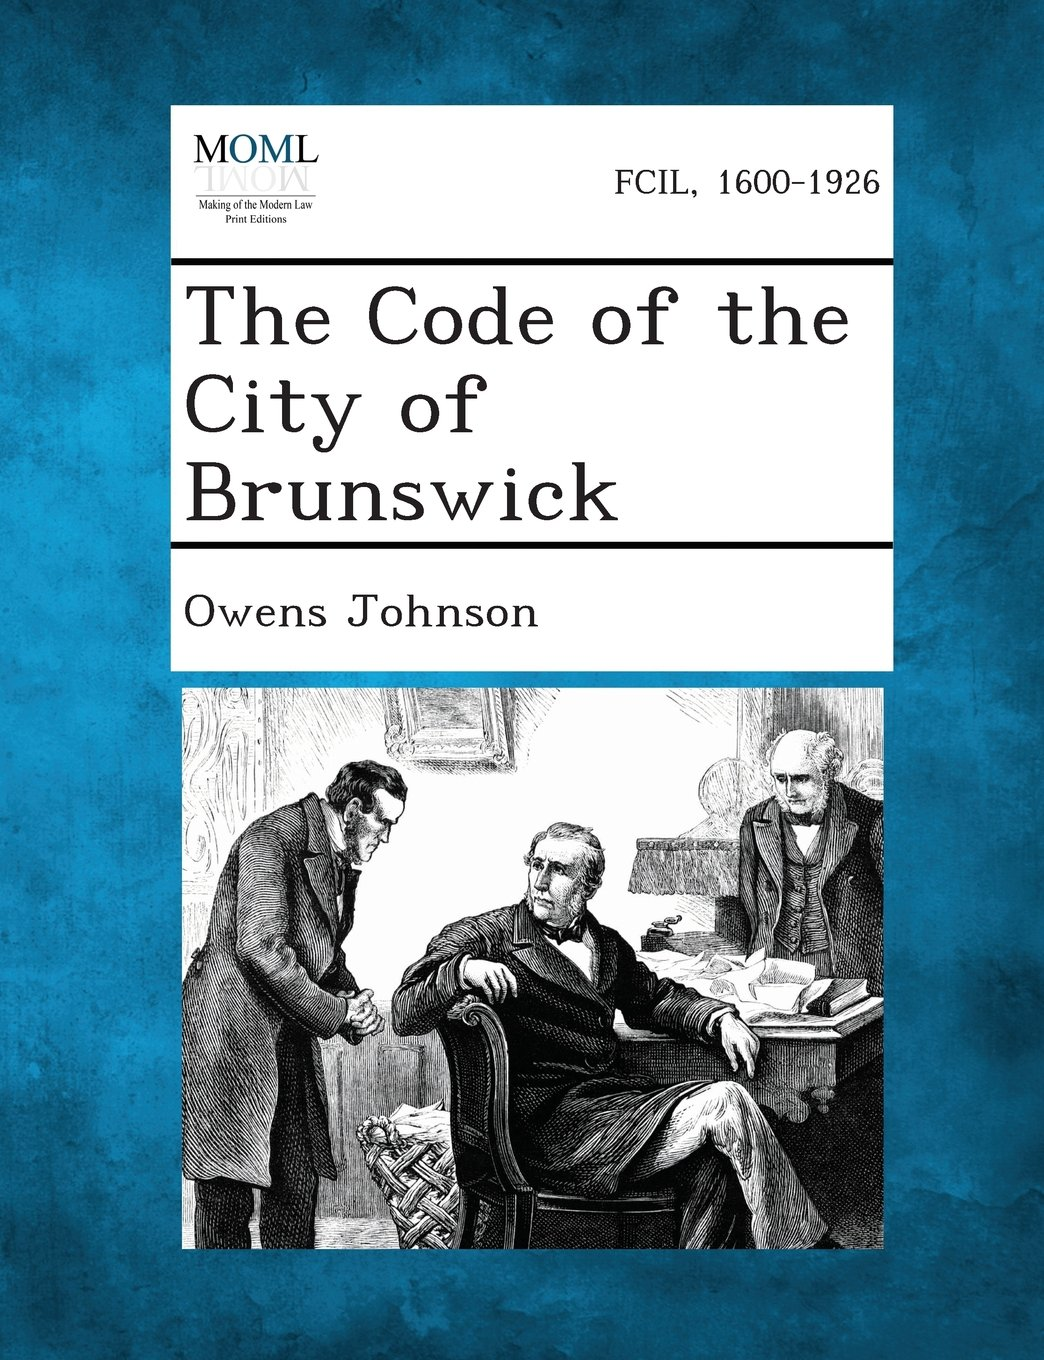 The Code of the City of Brunswick pdf